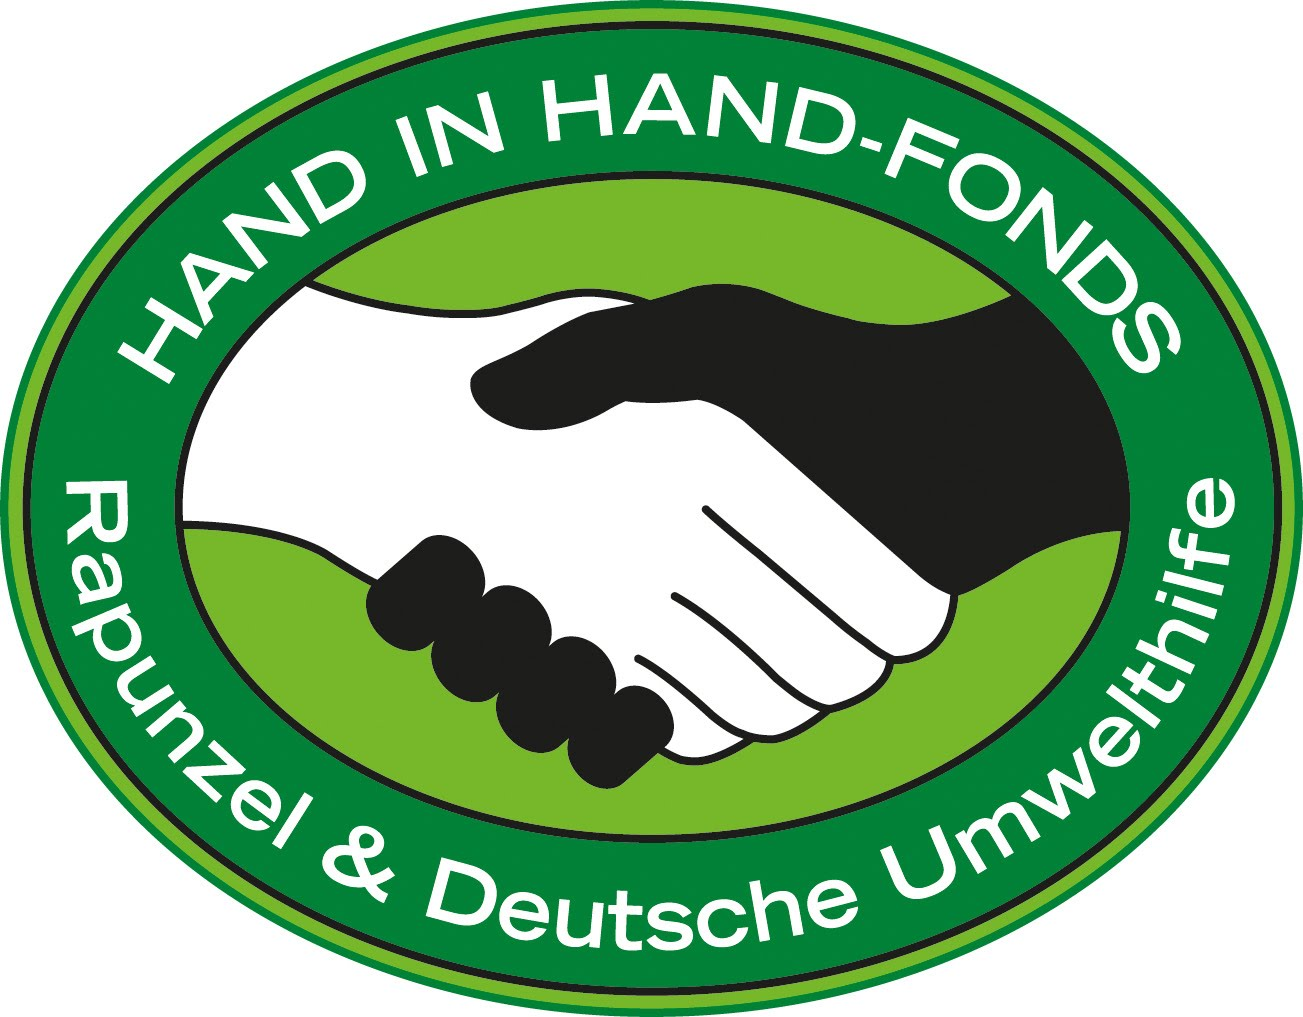 https://www.rapunzel.de/hand-in-hand-fonds.html